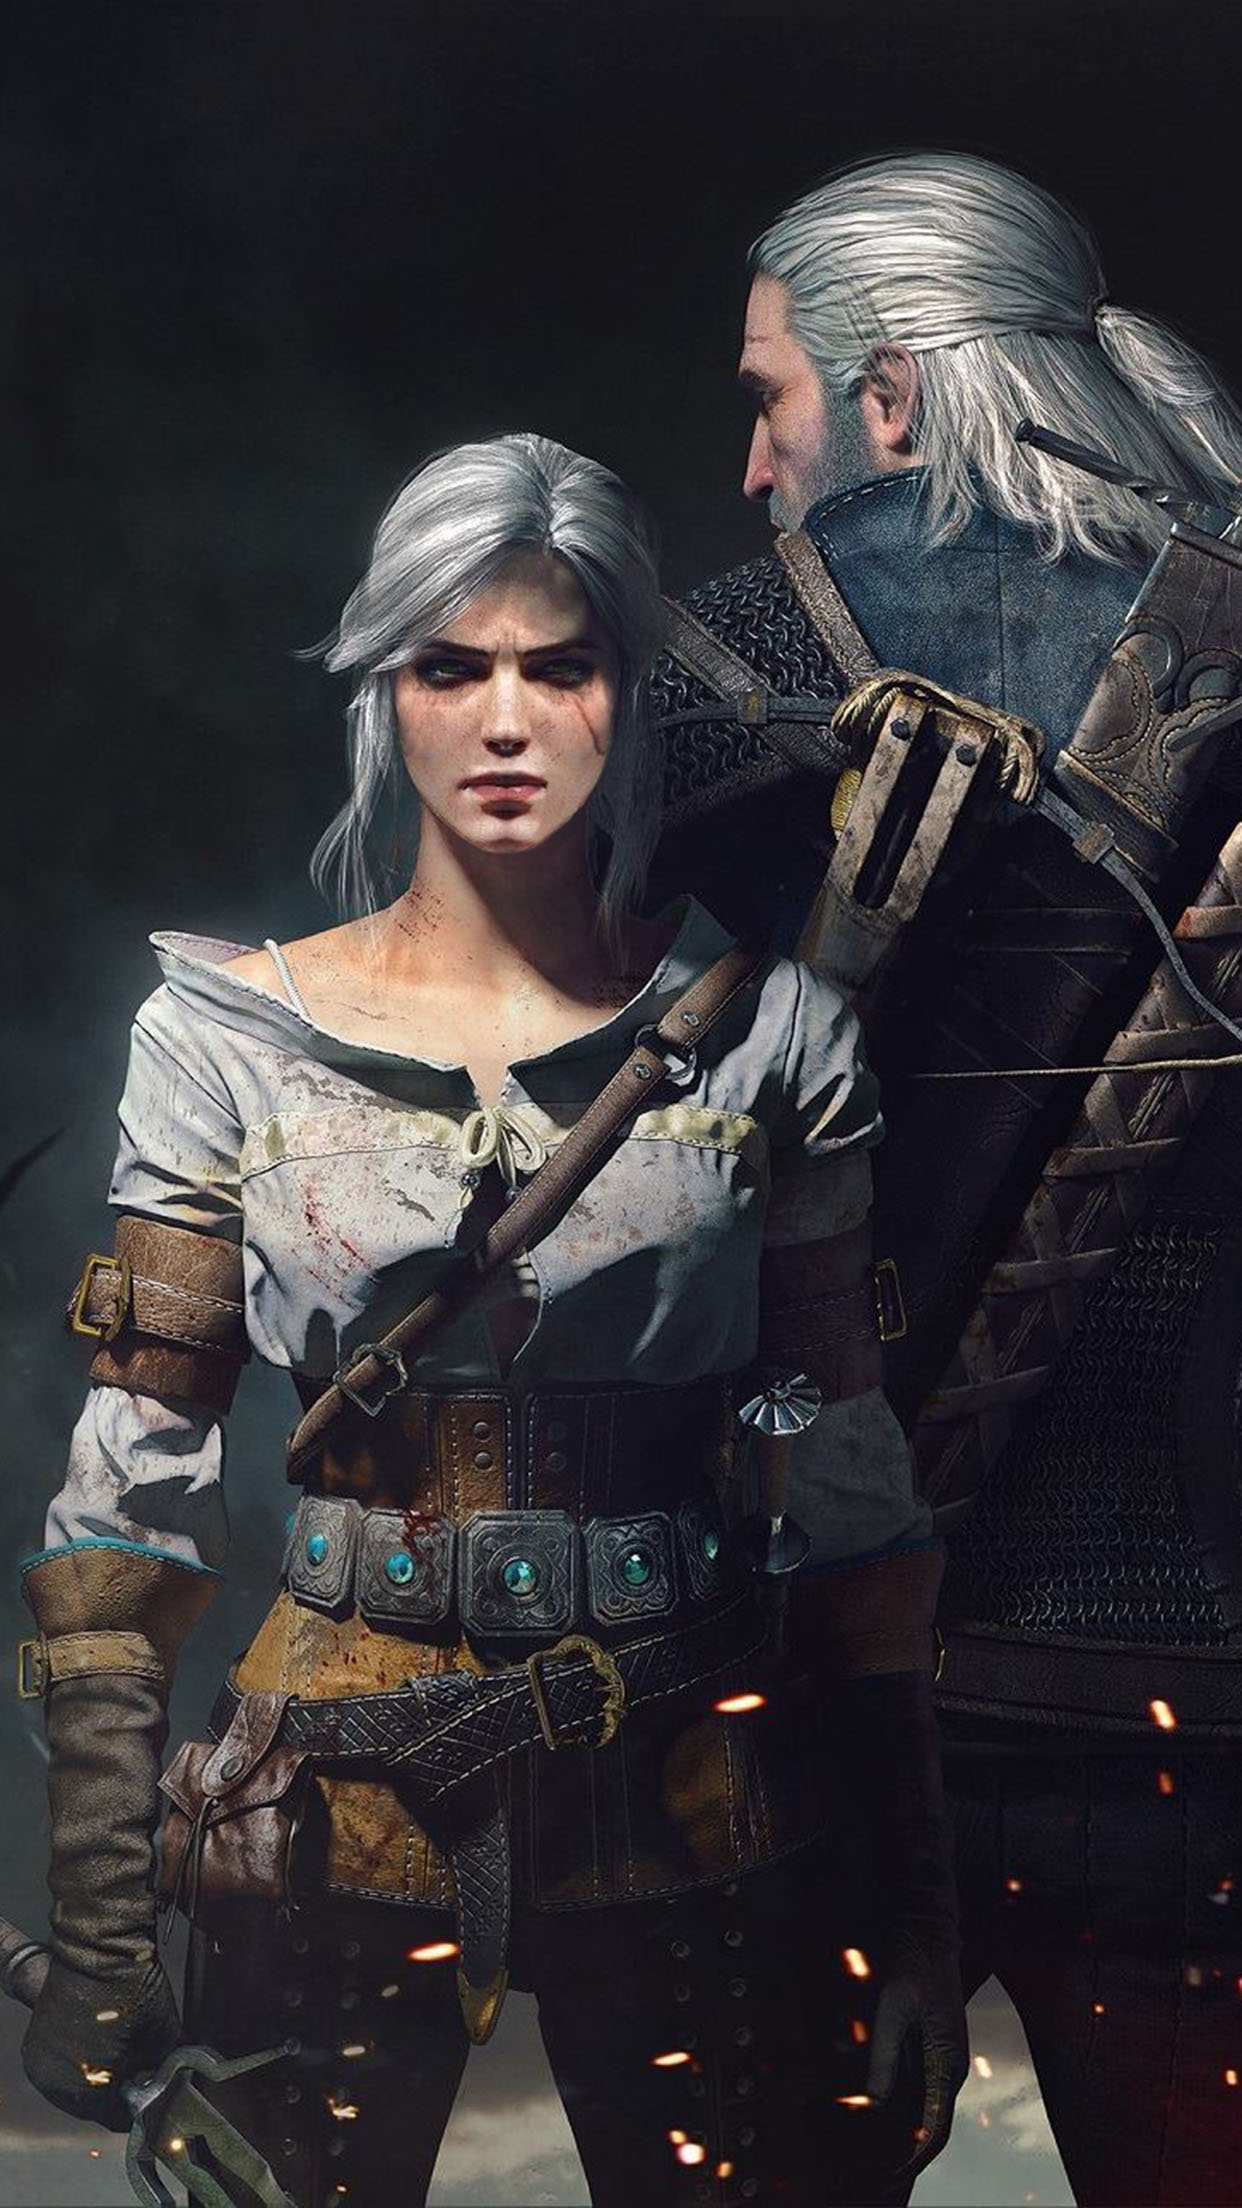 The Witcher 3 Wild Hunt 2 Wallpaper For Iphone X 8 7 6